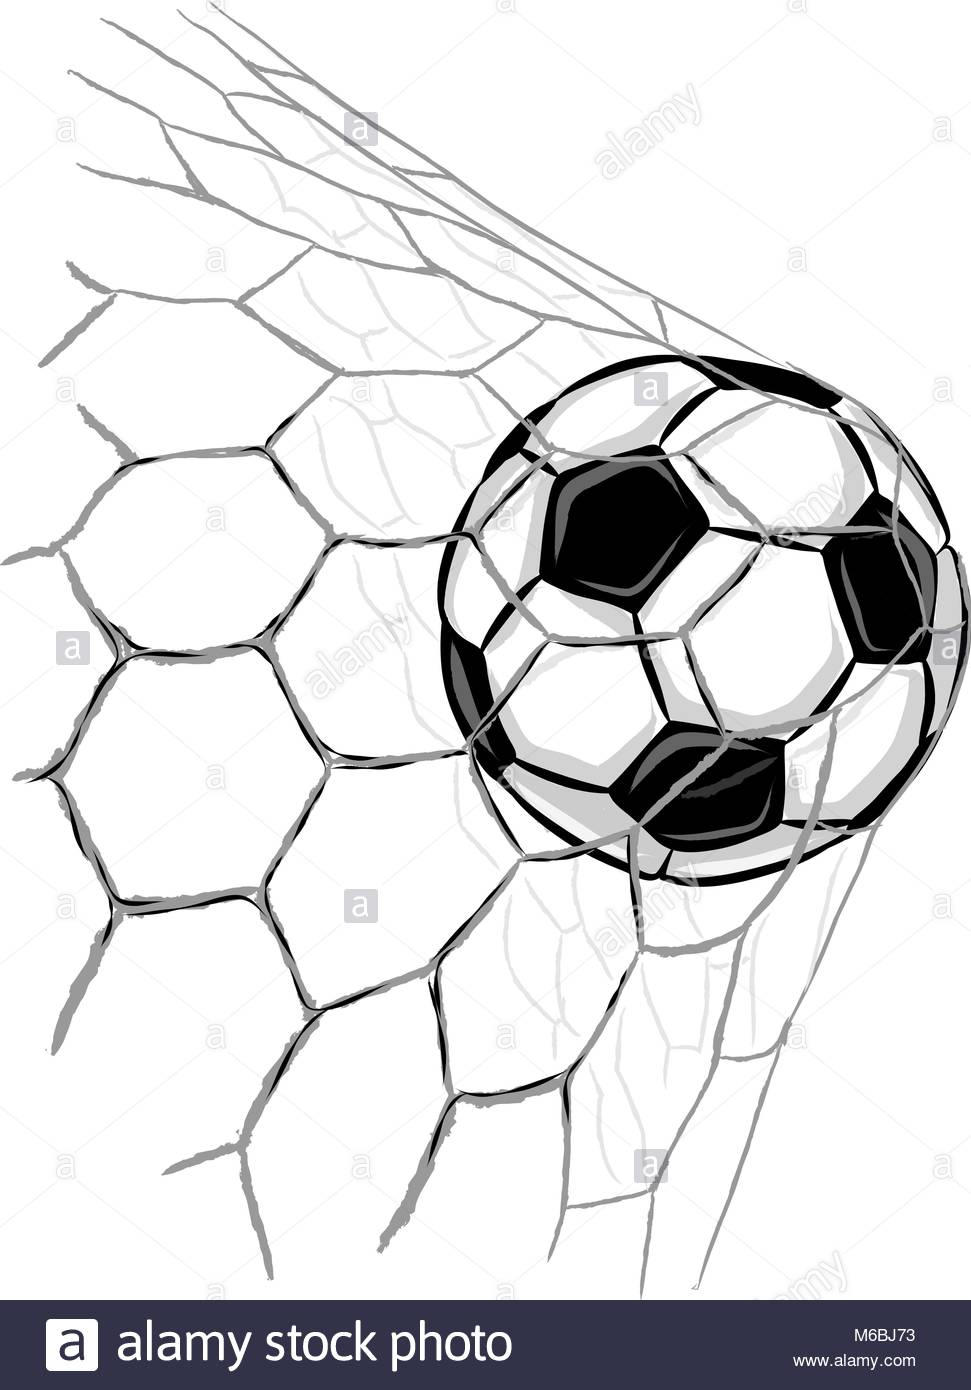 971x1390 Goal Net Black And White Stock Photos Amp Images